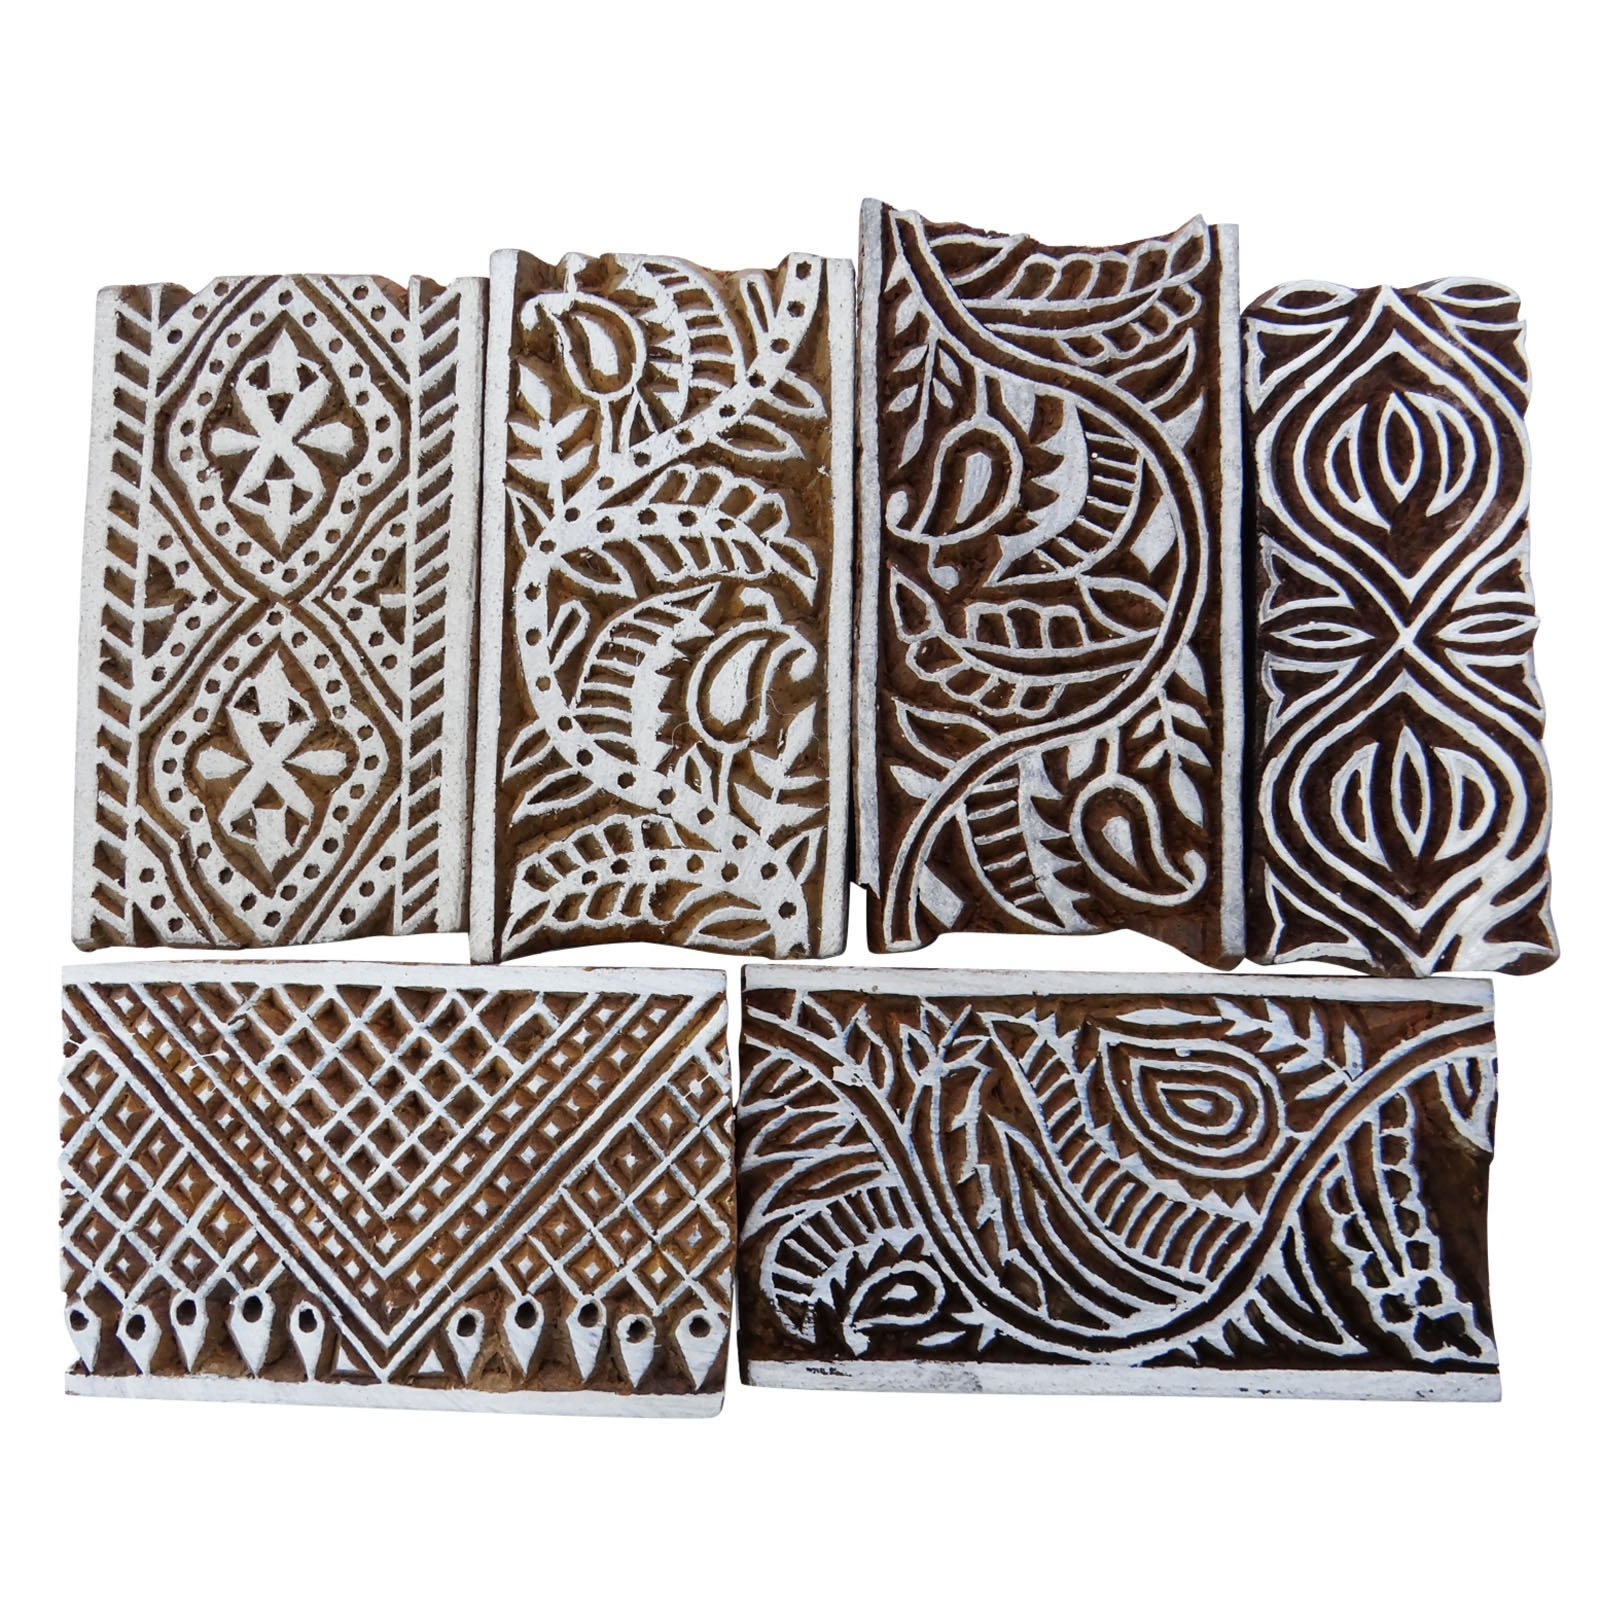 Lot Of 6 Pcs Hand Carved Printing Block Wooden Stamps Border Stamp Blockprint by Knitwit